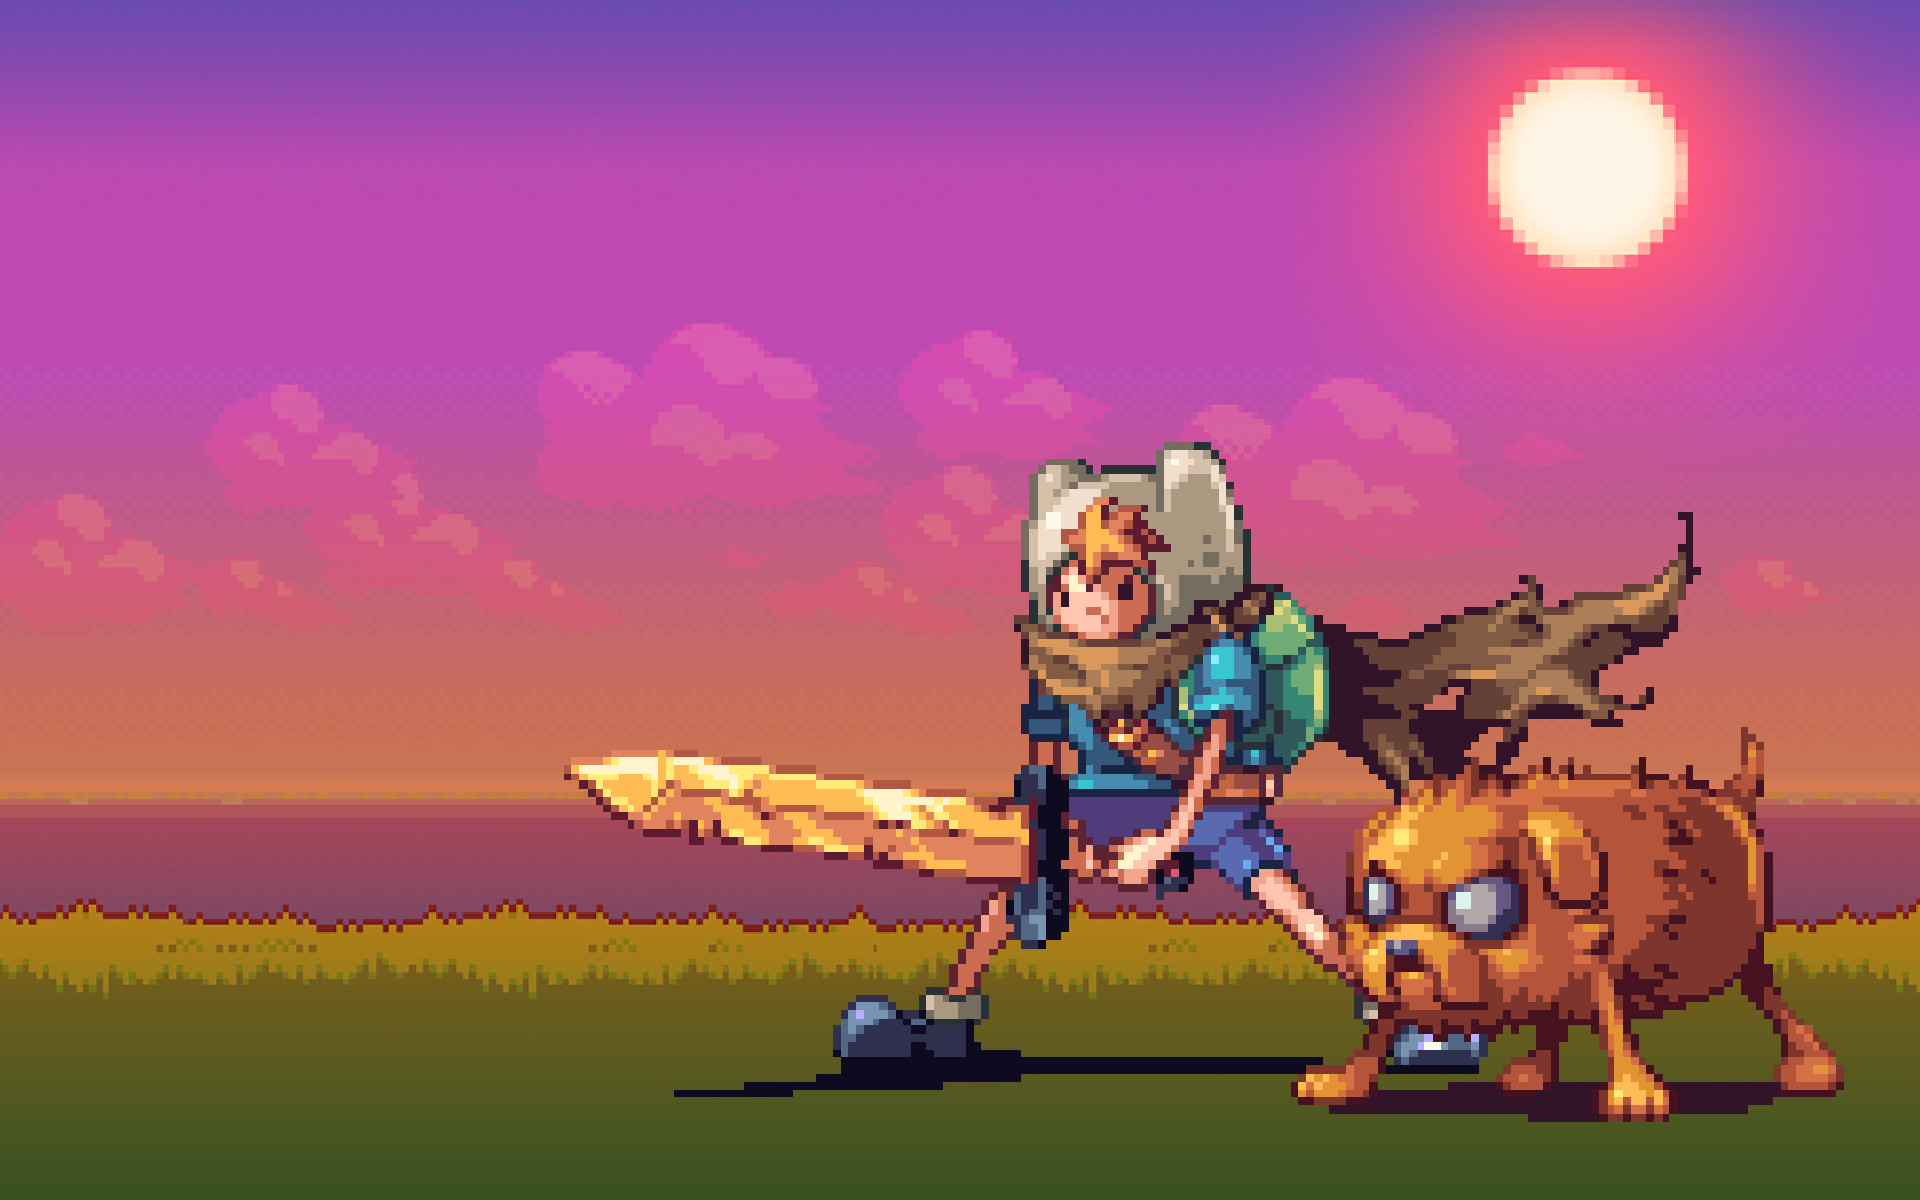 Animated Pixel Wallpaper (74+ images)